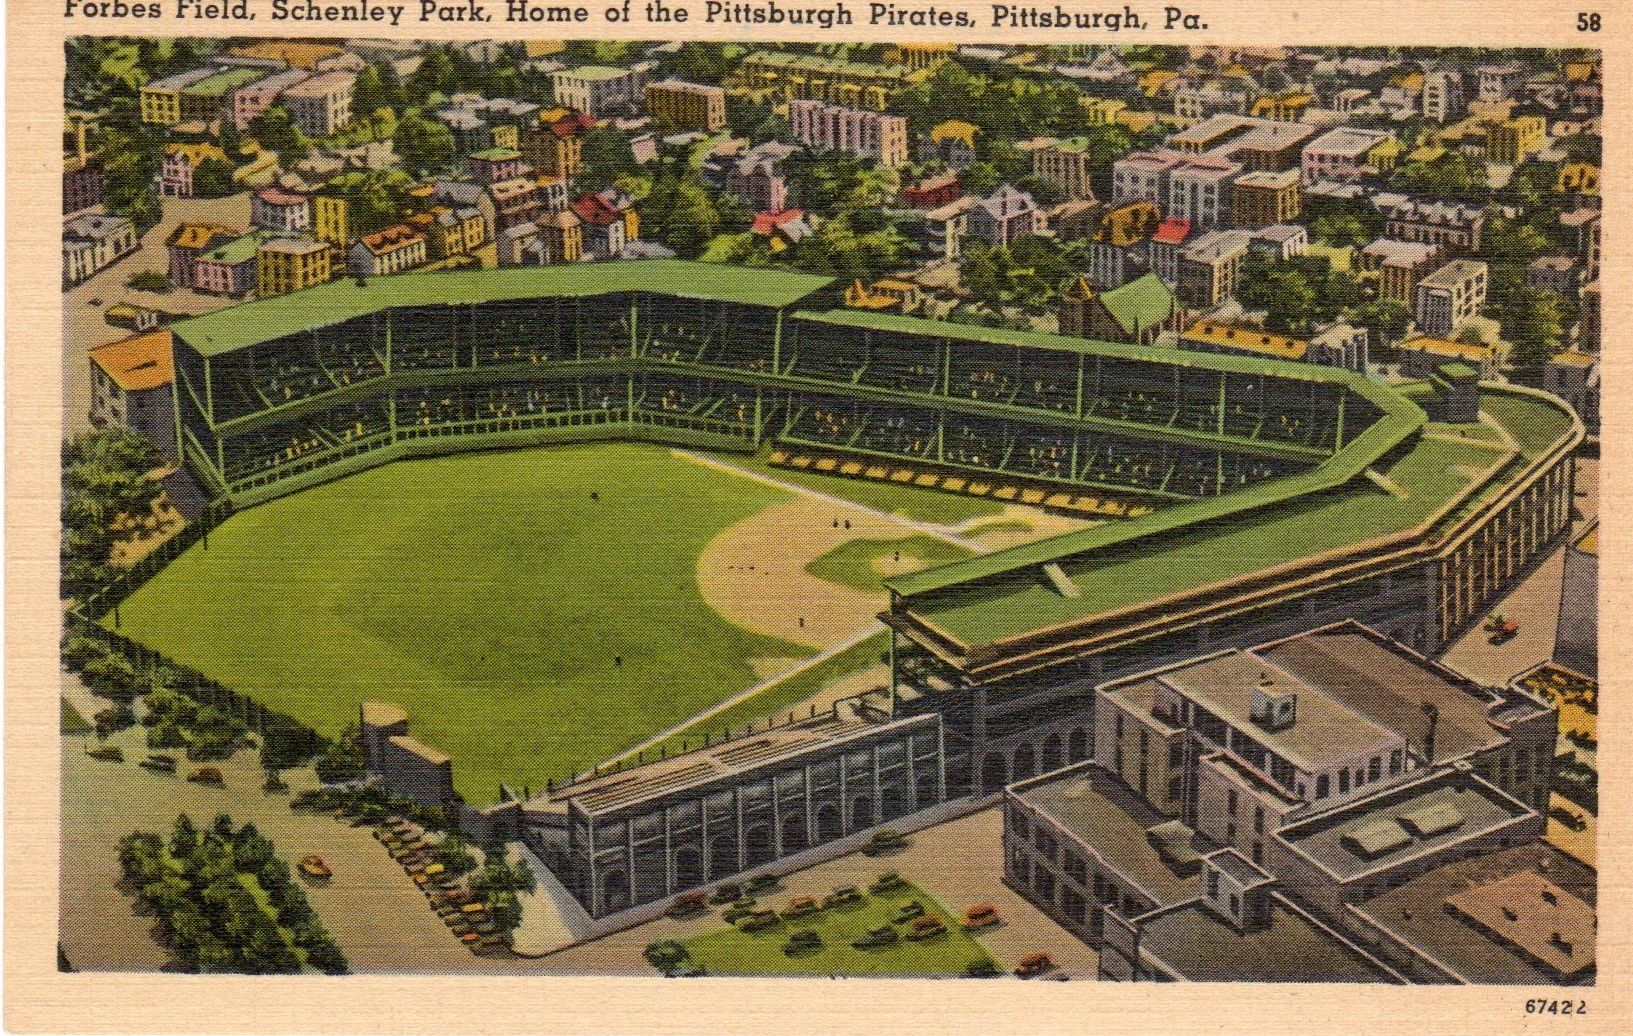 Pin On Forbes Field Postcards